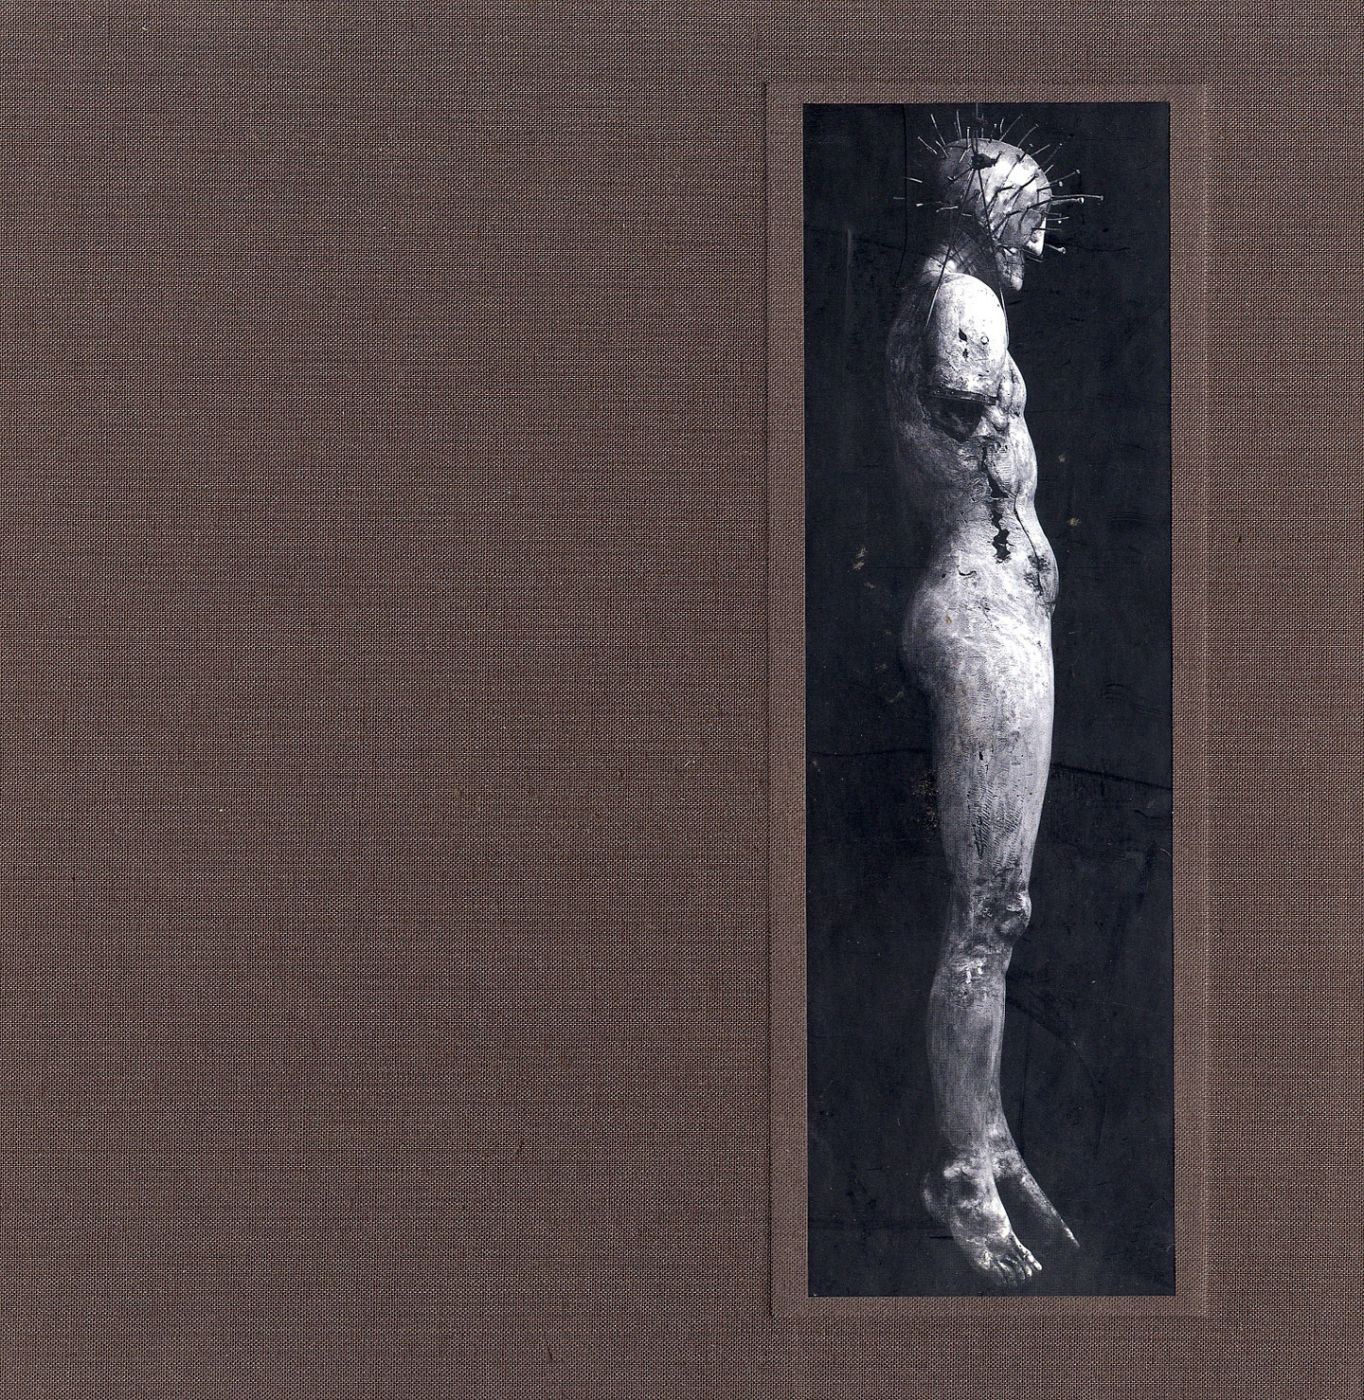 Joel-Peter Witkin: The Bone House (First Edition) [SIGNED]